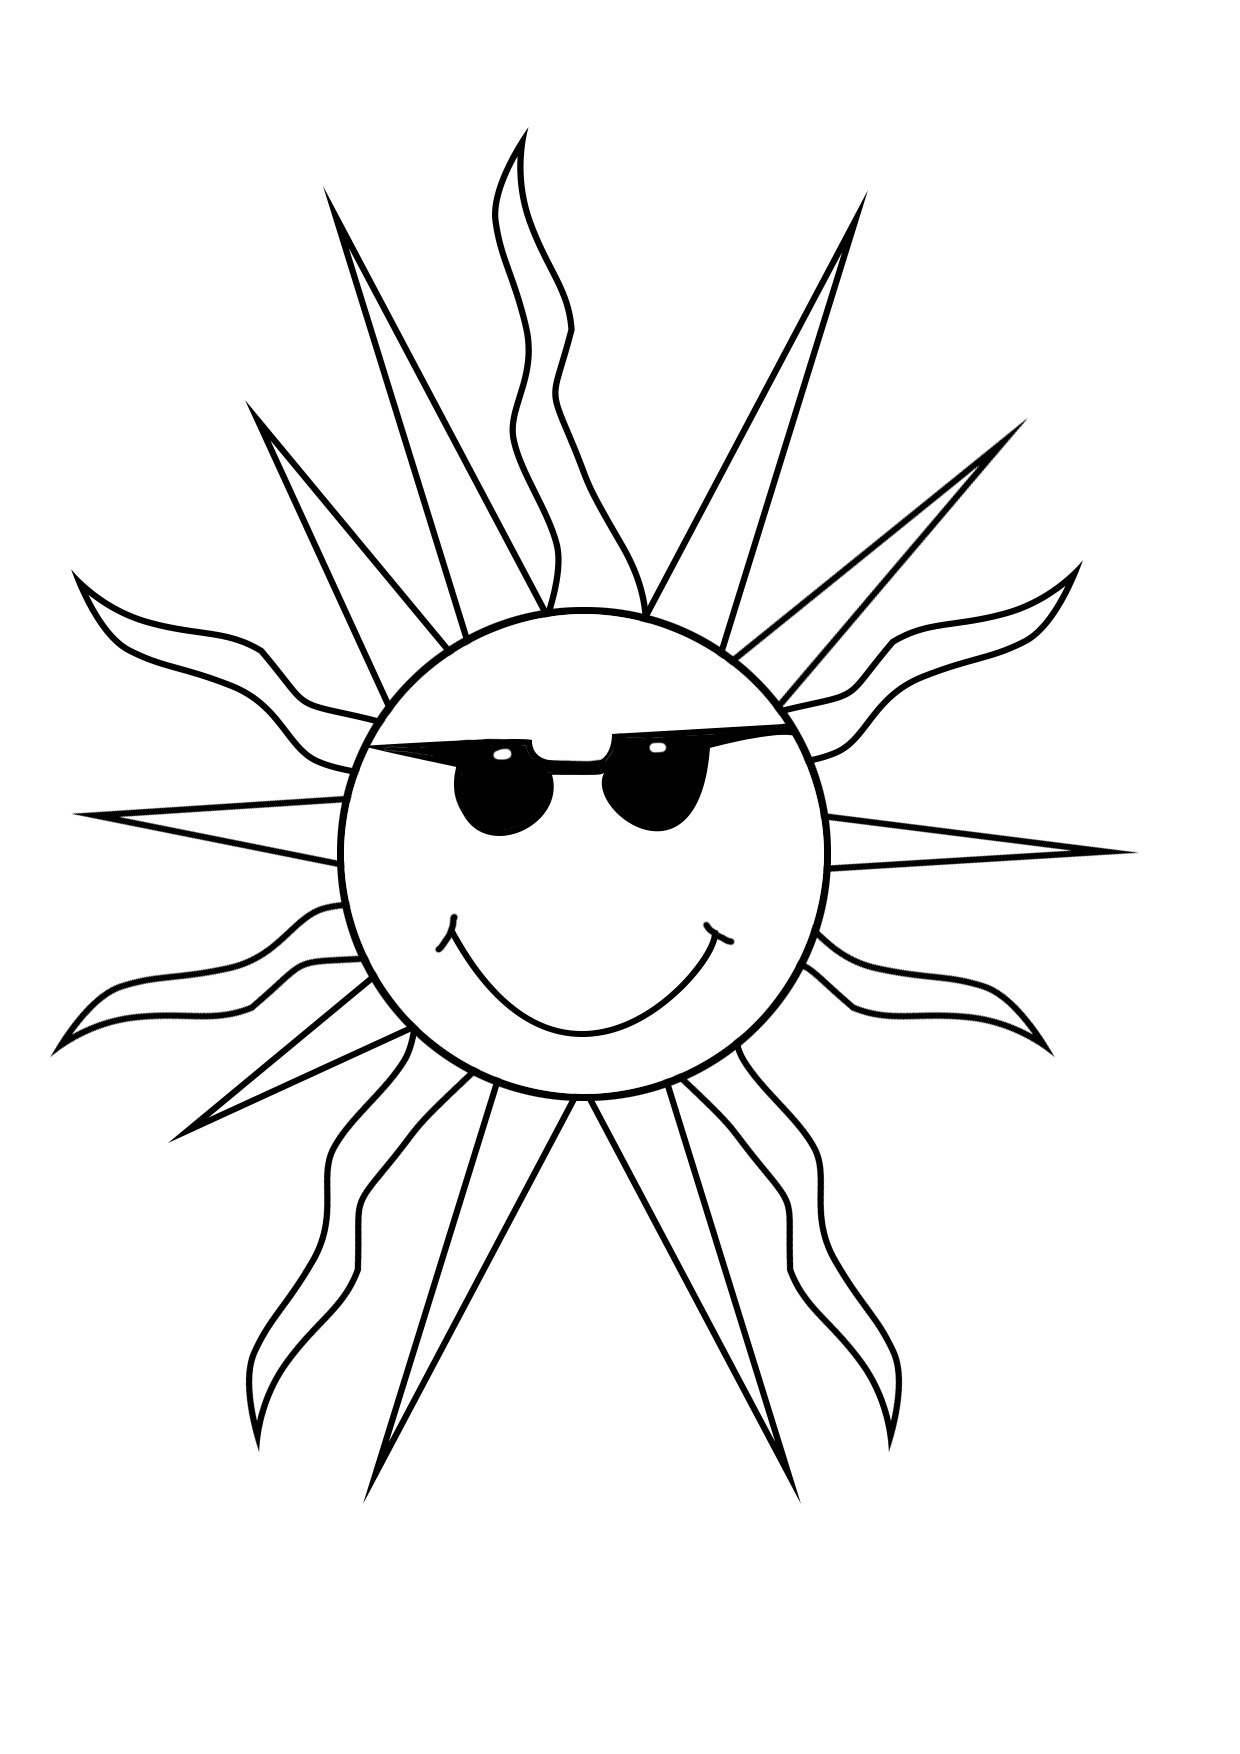 1240x1754 Summer Coloring Pages To Print